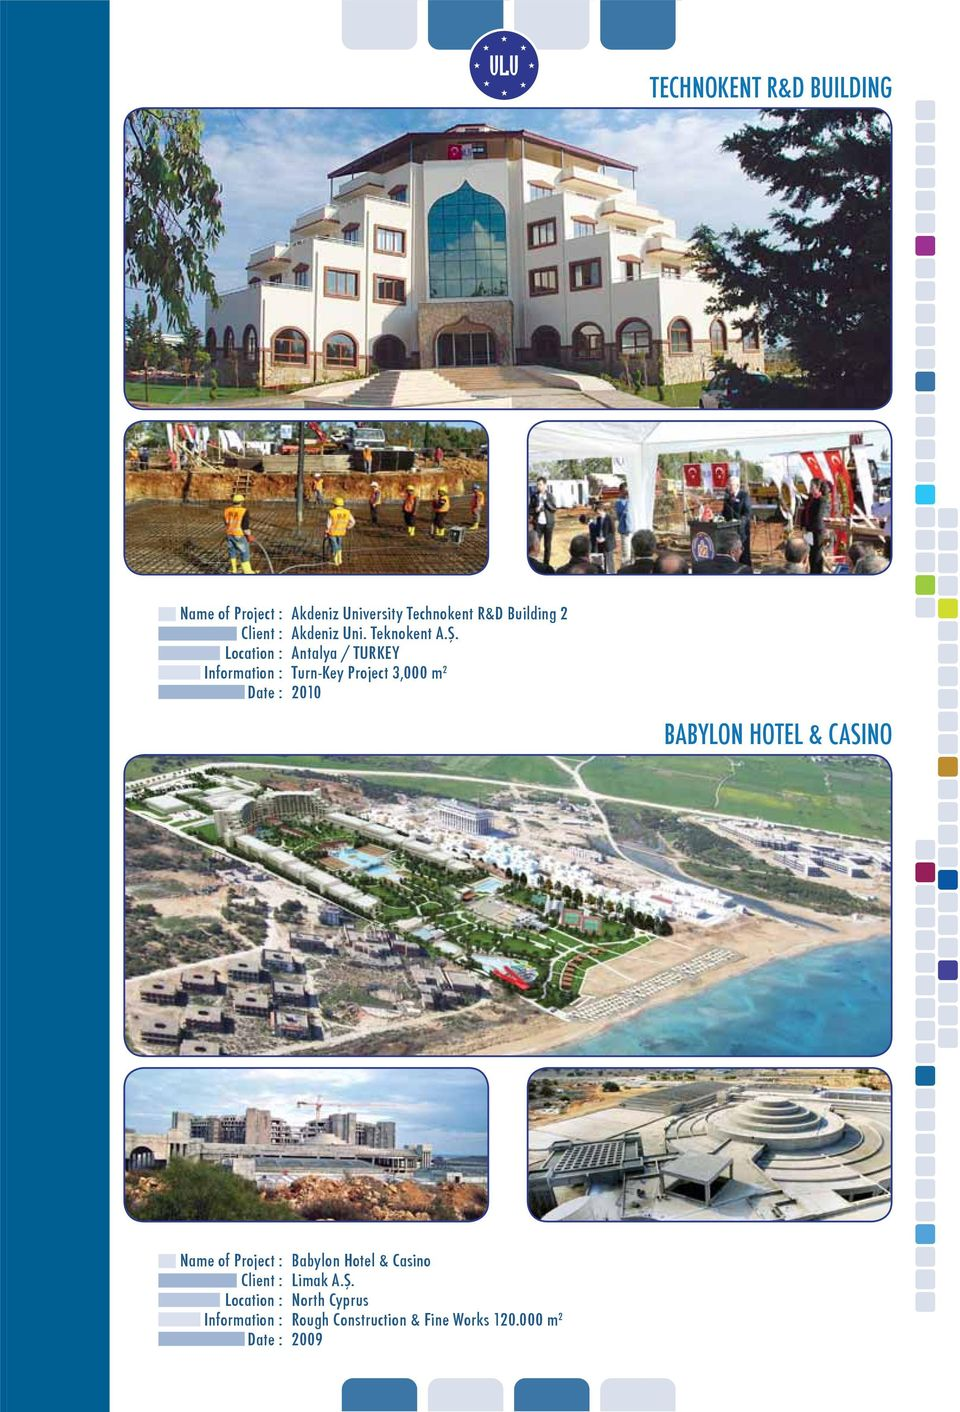 Antalya / TURKEY Turn-Key Project 3,000 m 2 2010 BABYLON HOTEL &